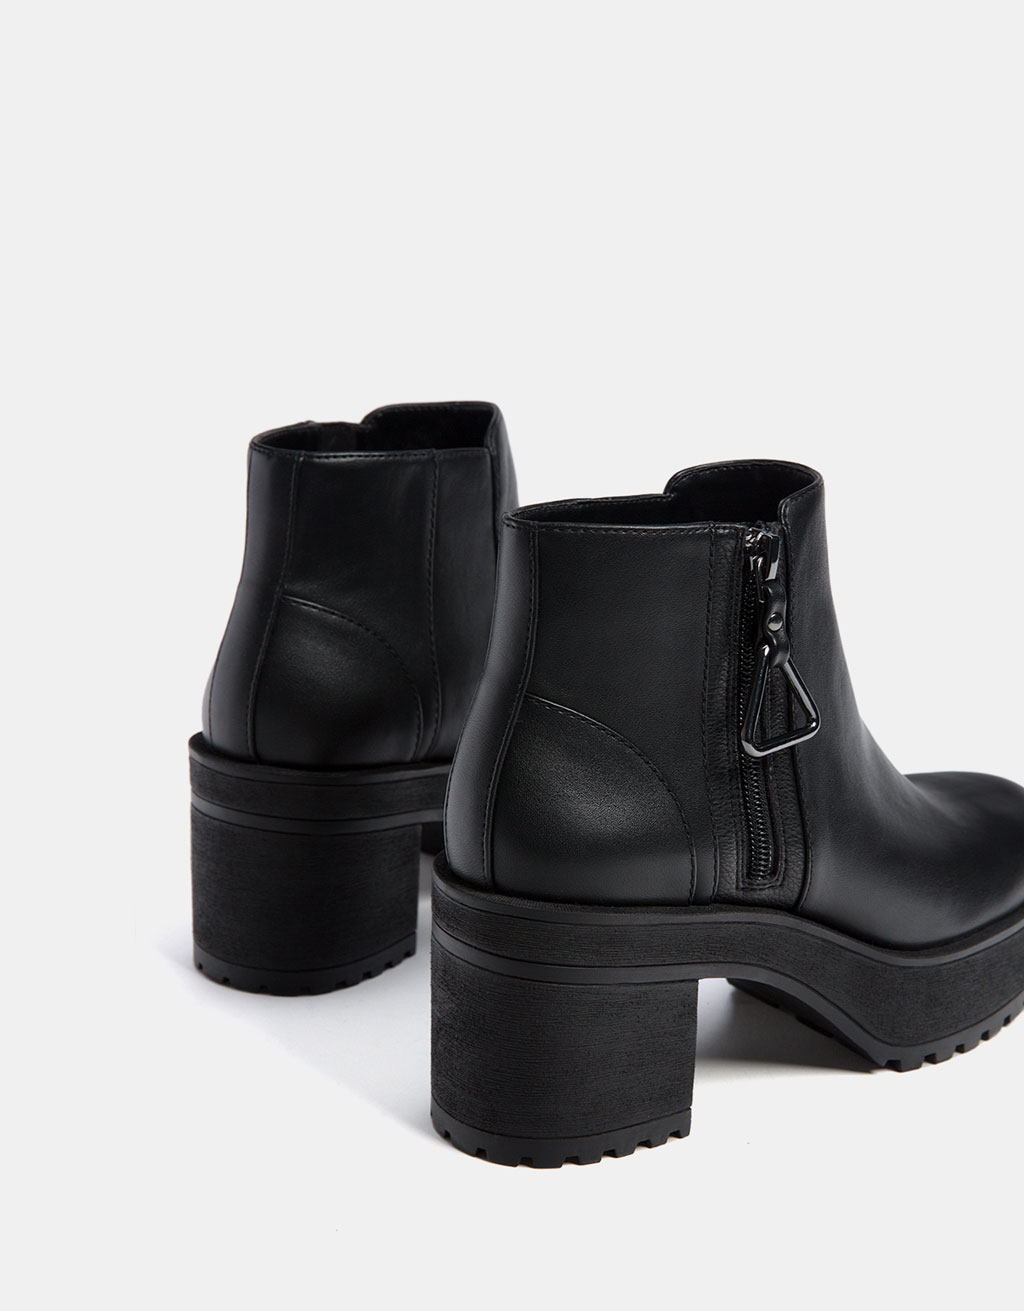 Mid heel platform ankle boots with zip pull detail